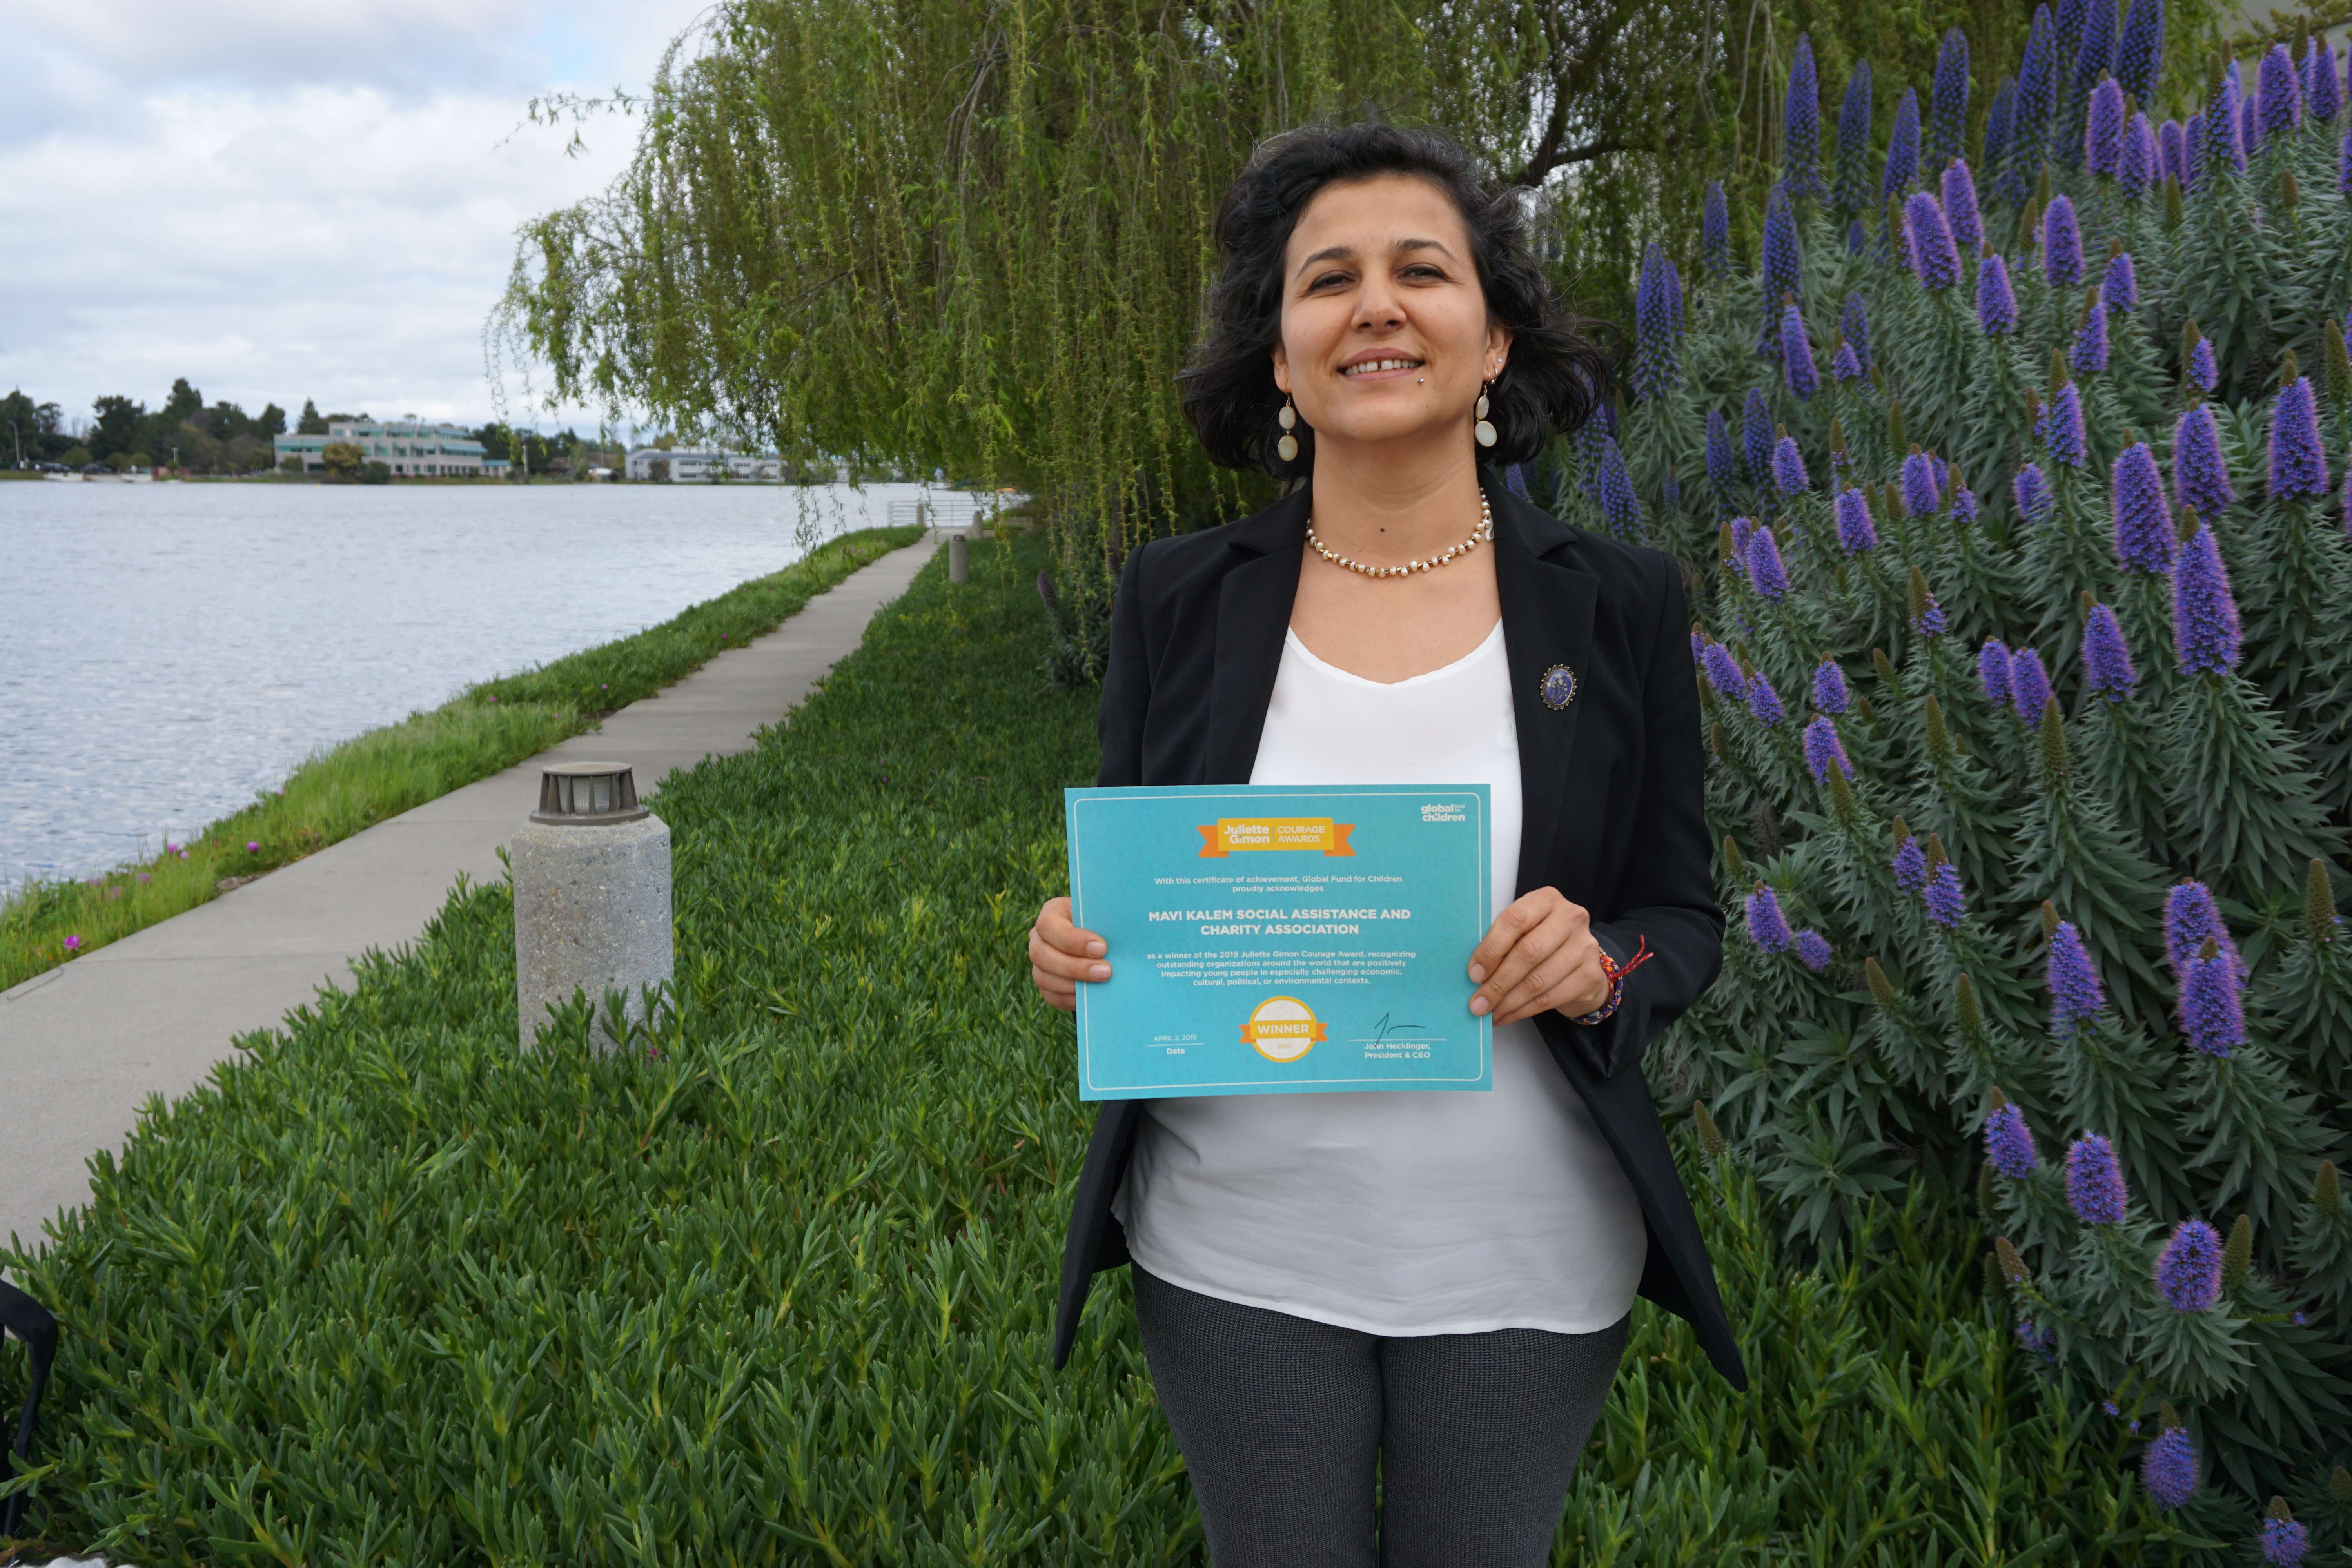 Gamze holding a Courage Award finalist certificate.